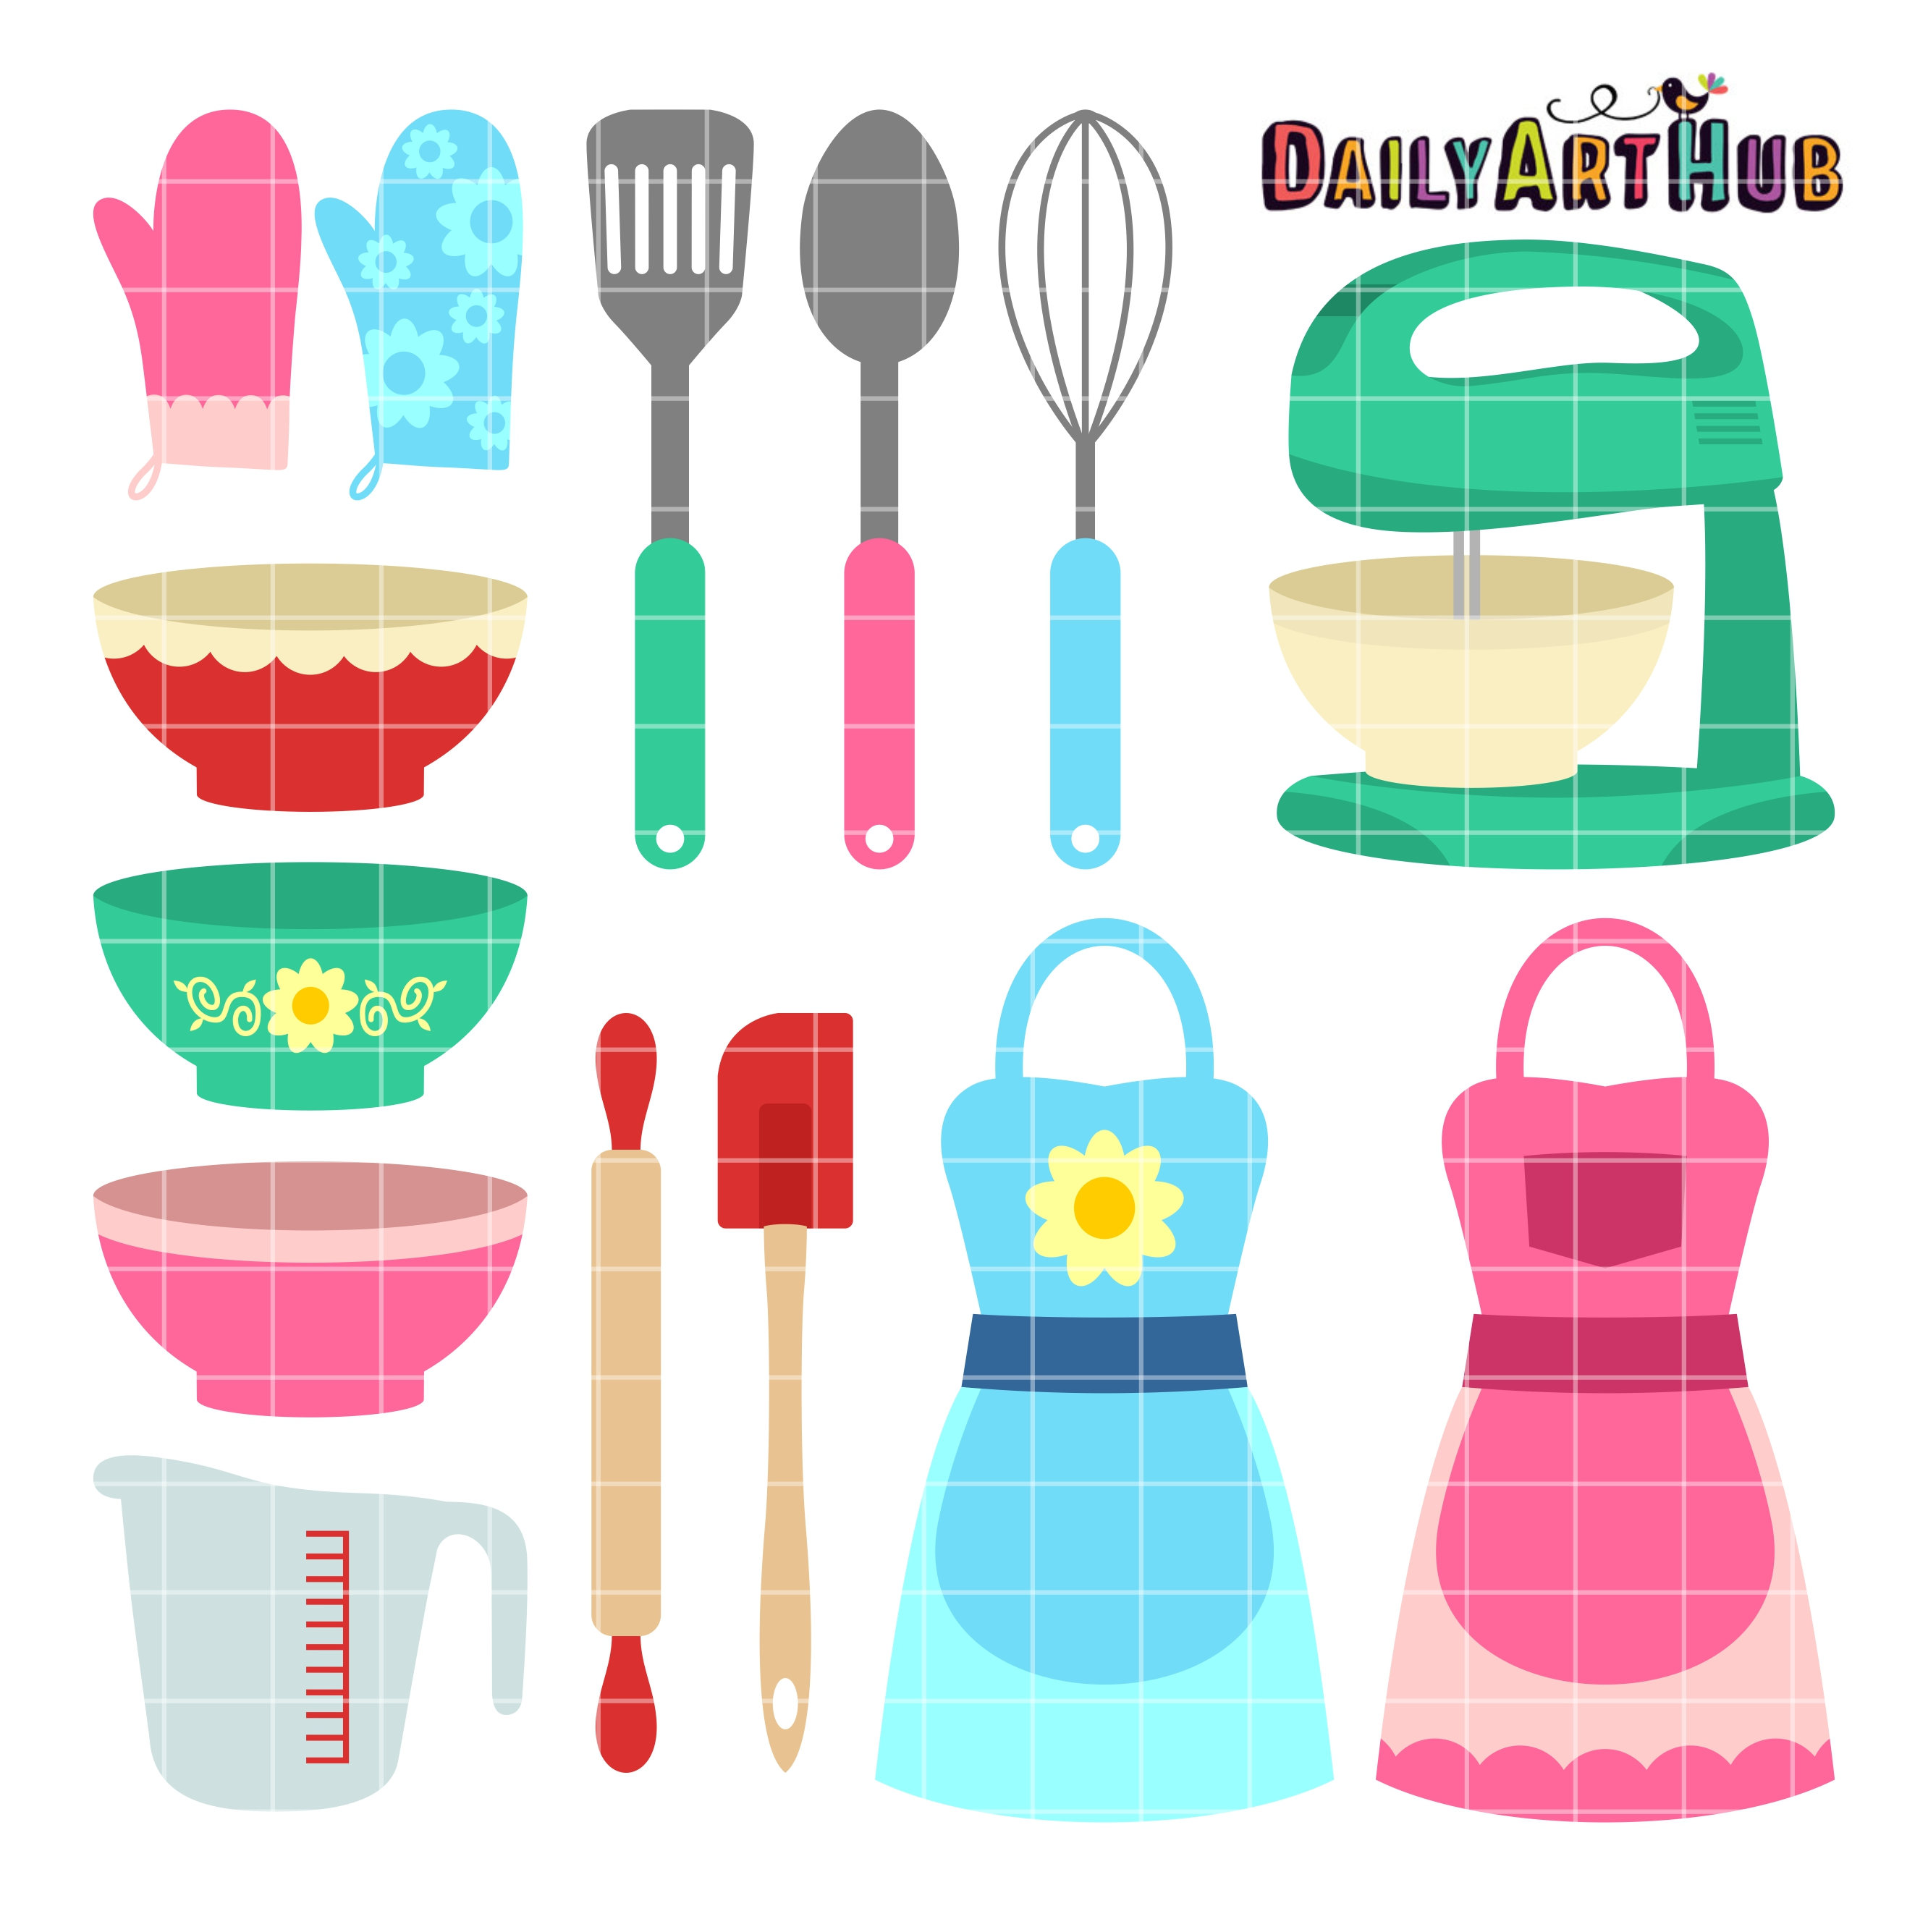 Cute kitchen clipart graphic transparent stock Cute Kitchen Wares Clip Art Set graphic transparent stock